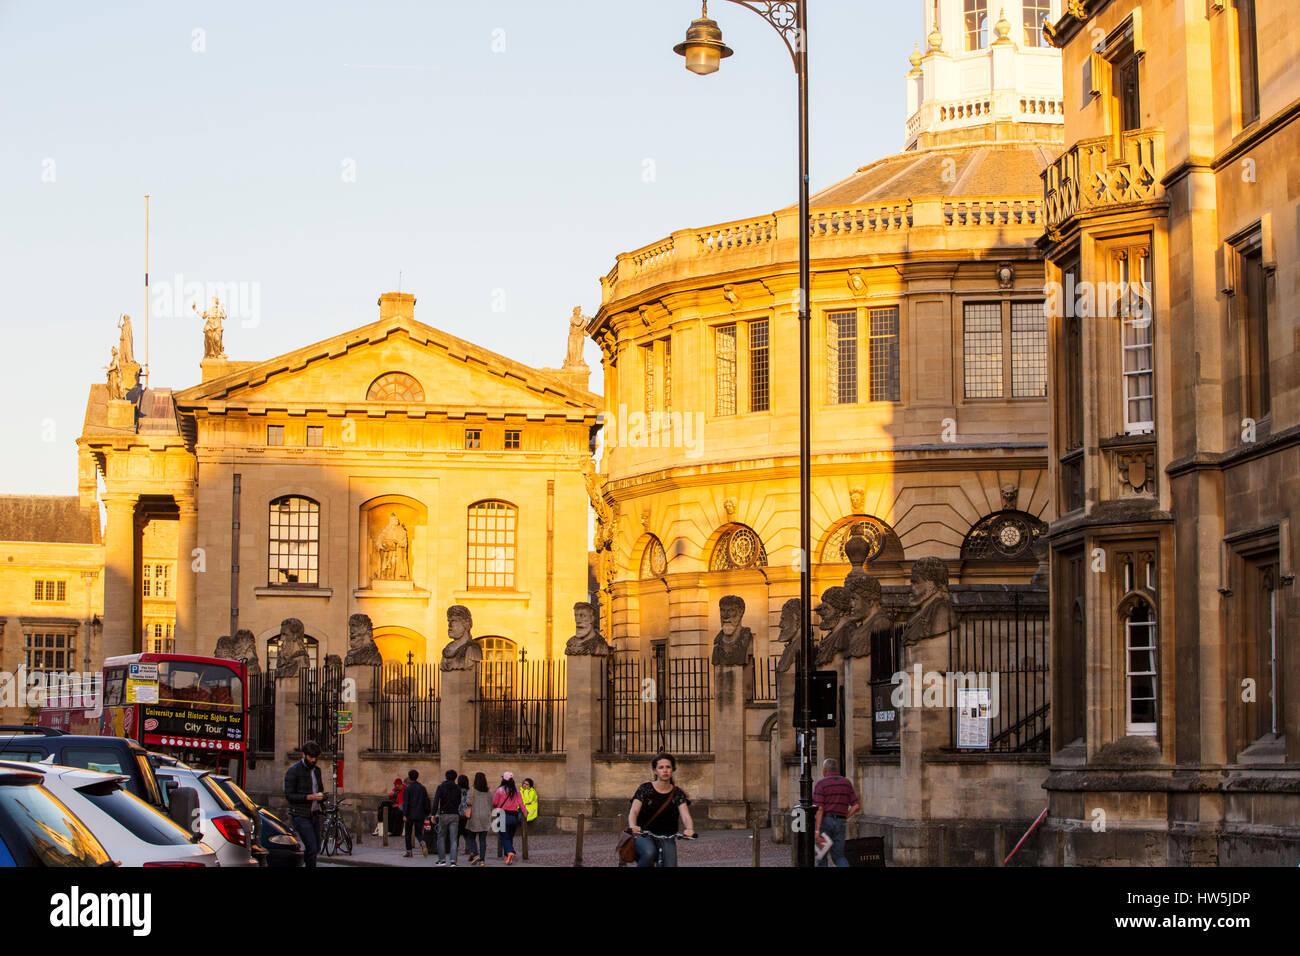 The Sheldonian Theatre and the Clarendon Building in Oxford, UK. Stock Photo